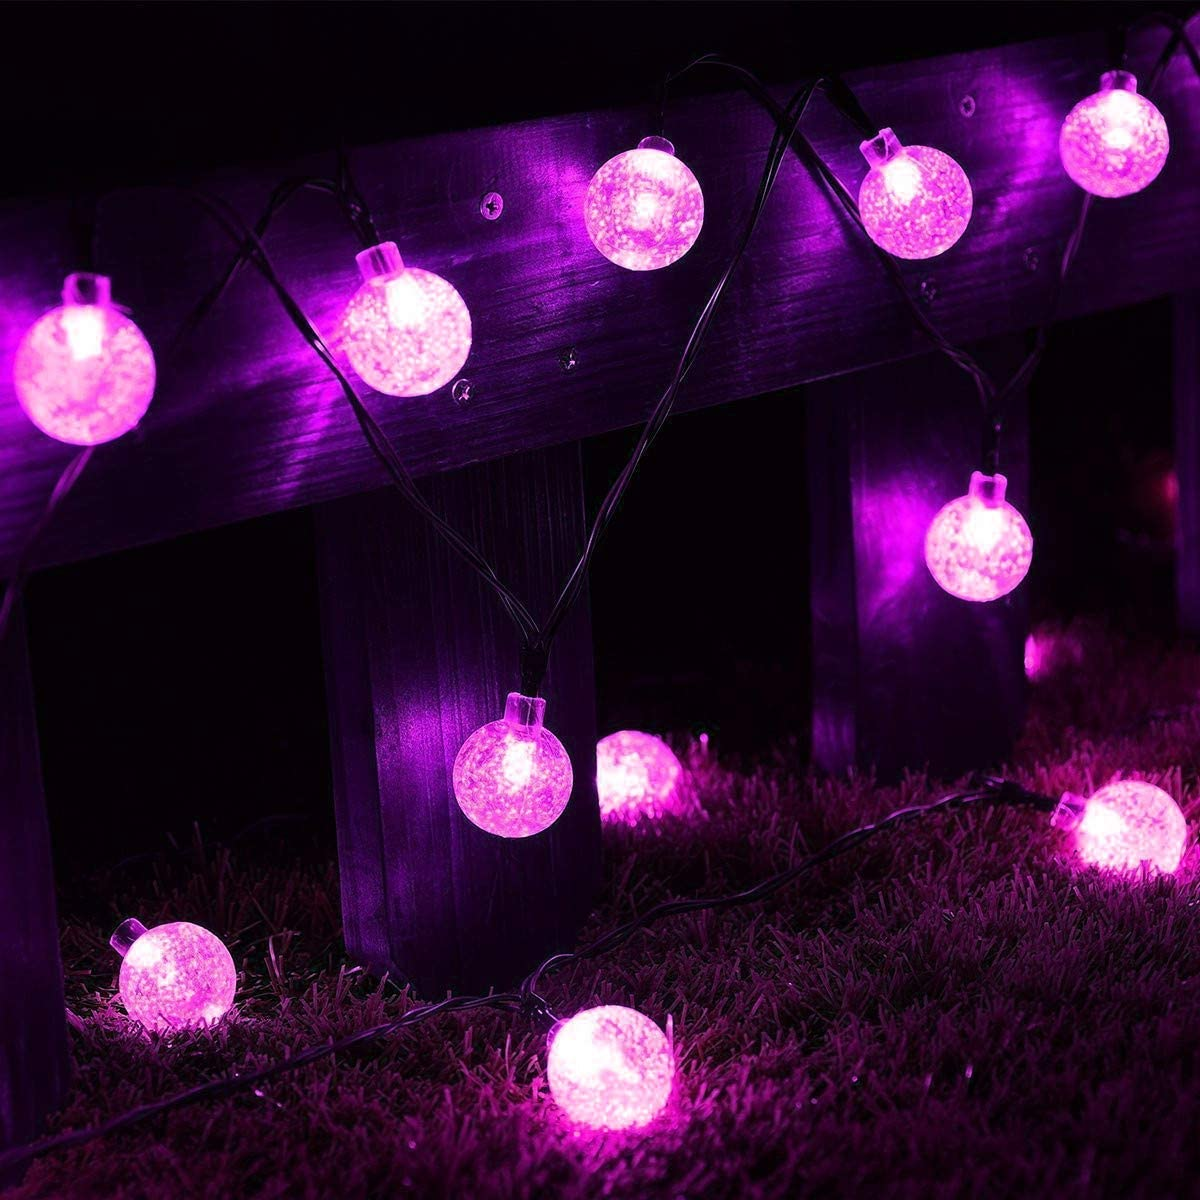 Luces Decorativas de Bola al Aire Libre, 12M 100LED Bubble Crystal Ball Lights Luces Decorativas de Globo Bombilla Decorativa Solar Luces Interiores Jardín Luces al Aire Libre para Fiesta Árbol Boda Pink